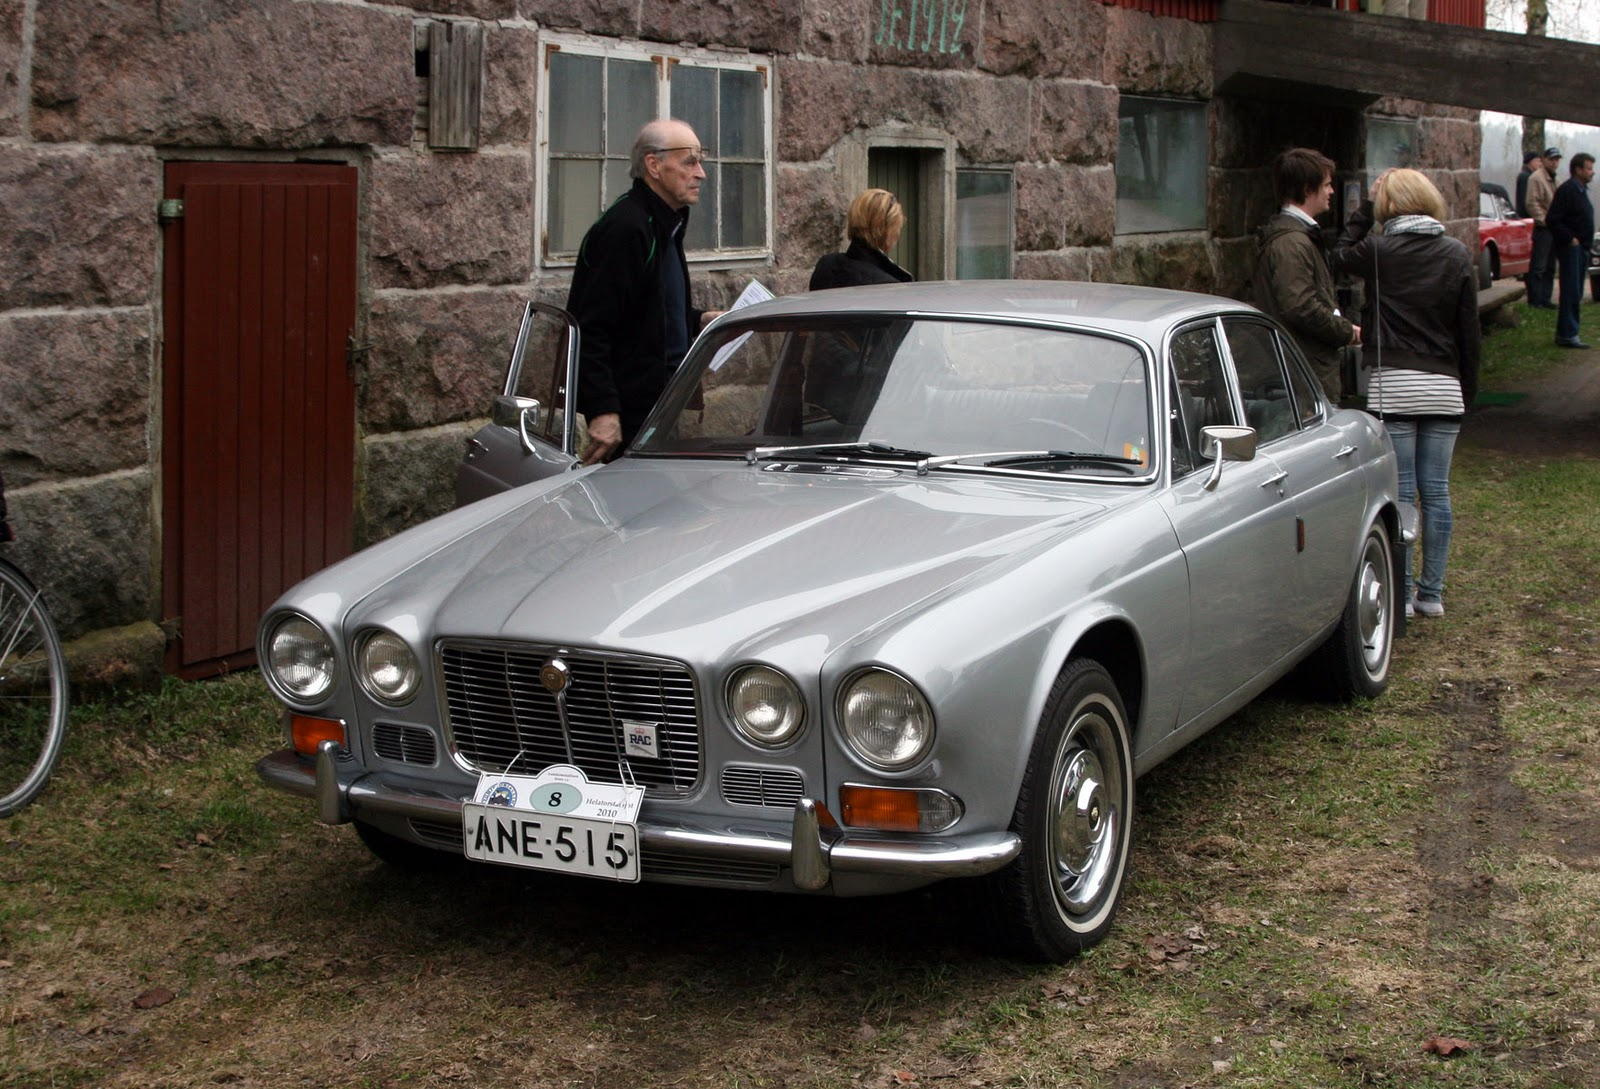 1973 Daimler Sovereign Series II 4.2